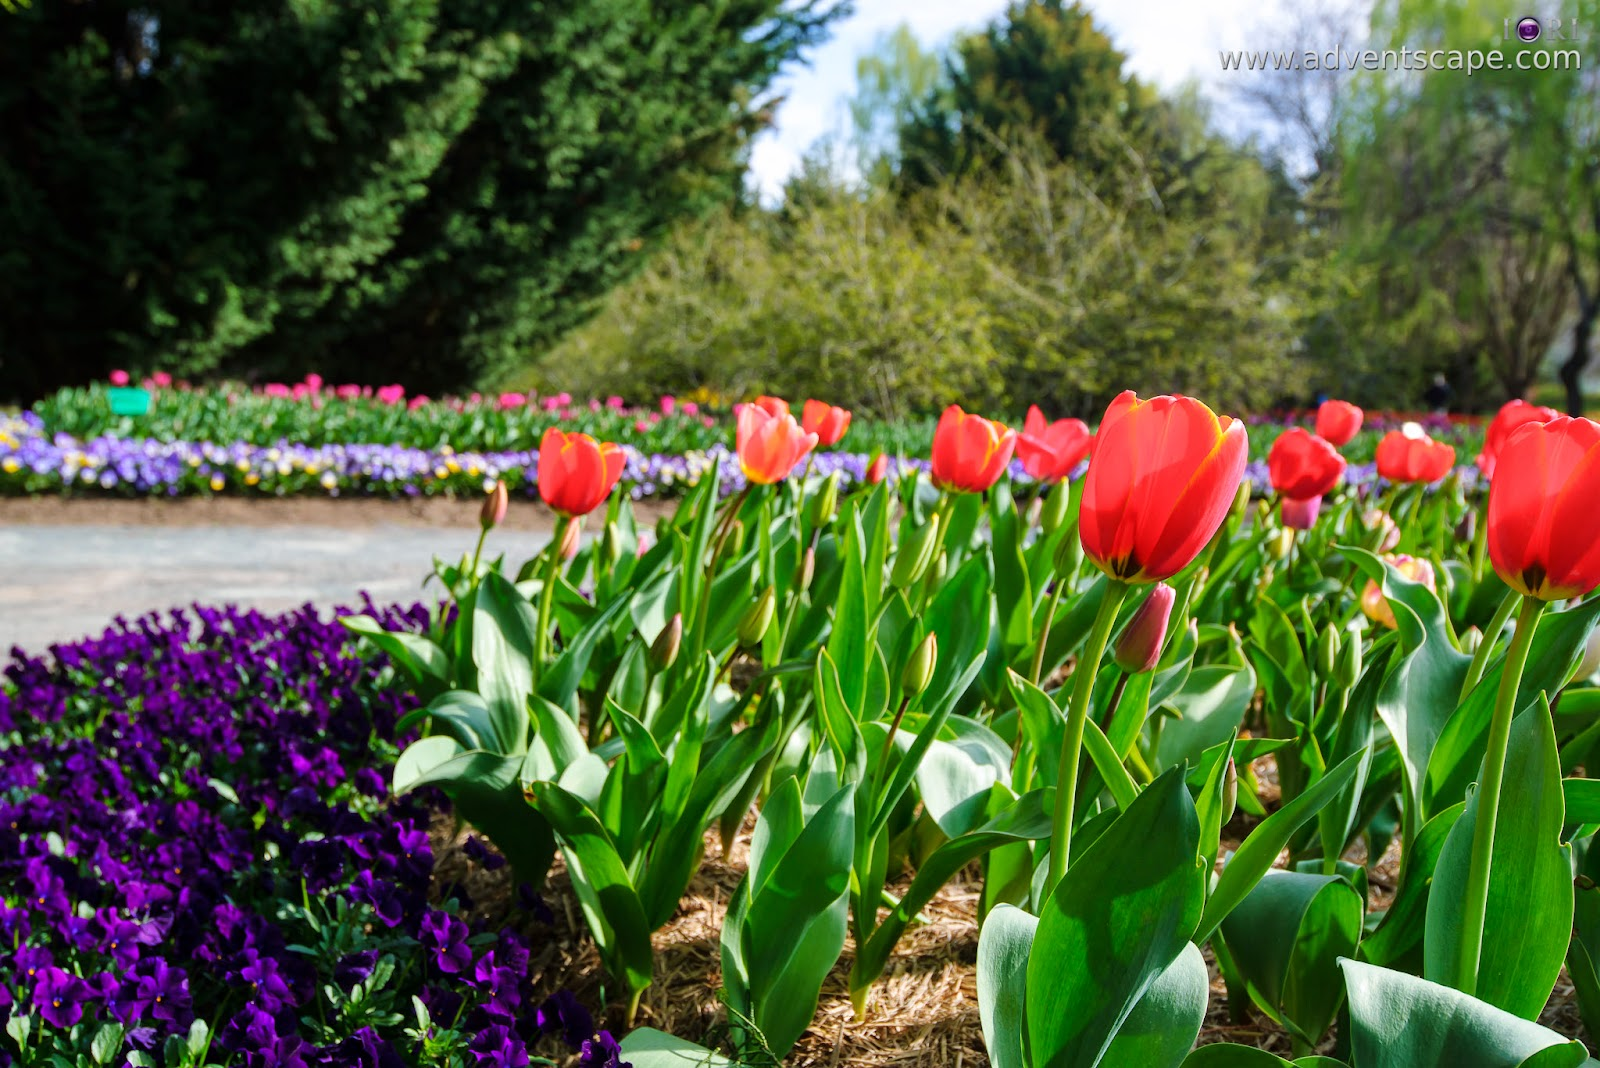 Philip Avellana, adventscape, iori, Tulip Top Gardens, garden, spring, NSW, New South Wales, Sutton, Old Federal Highway, Bywong, 2621, POV, Point of View